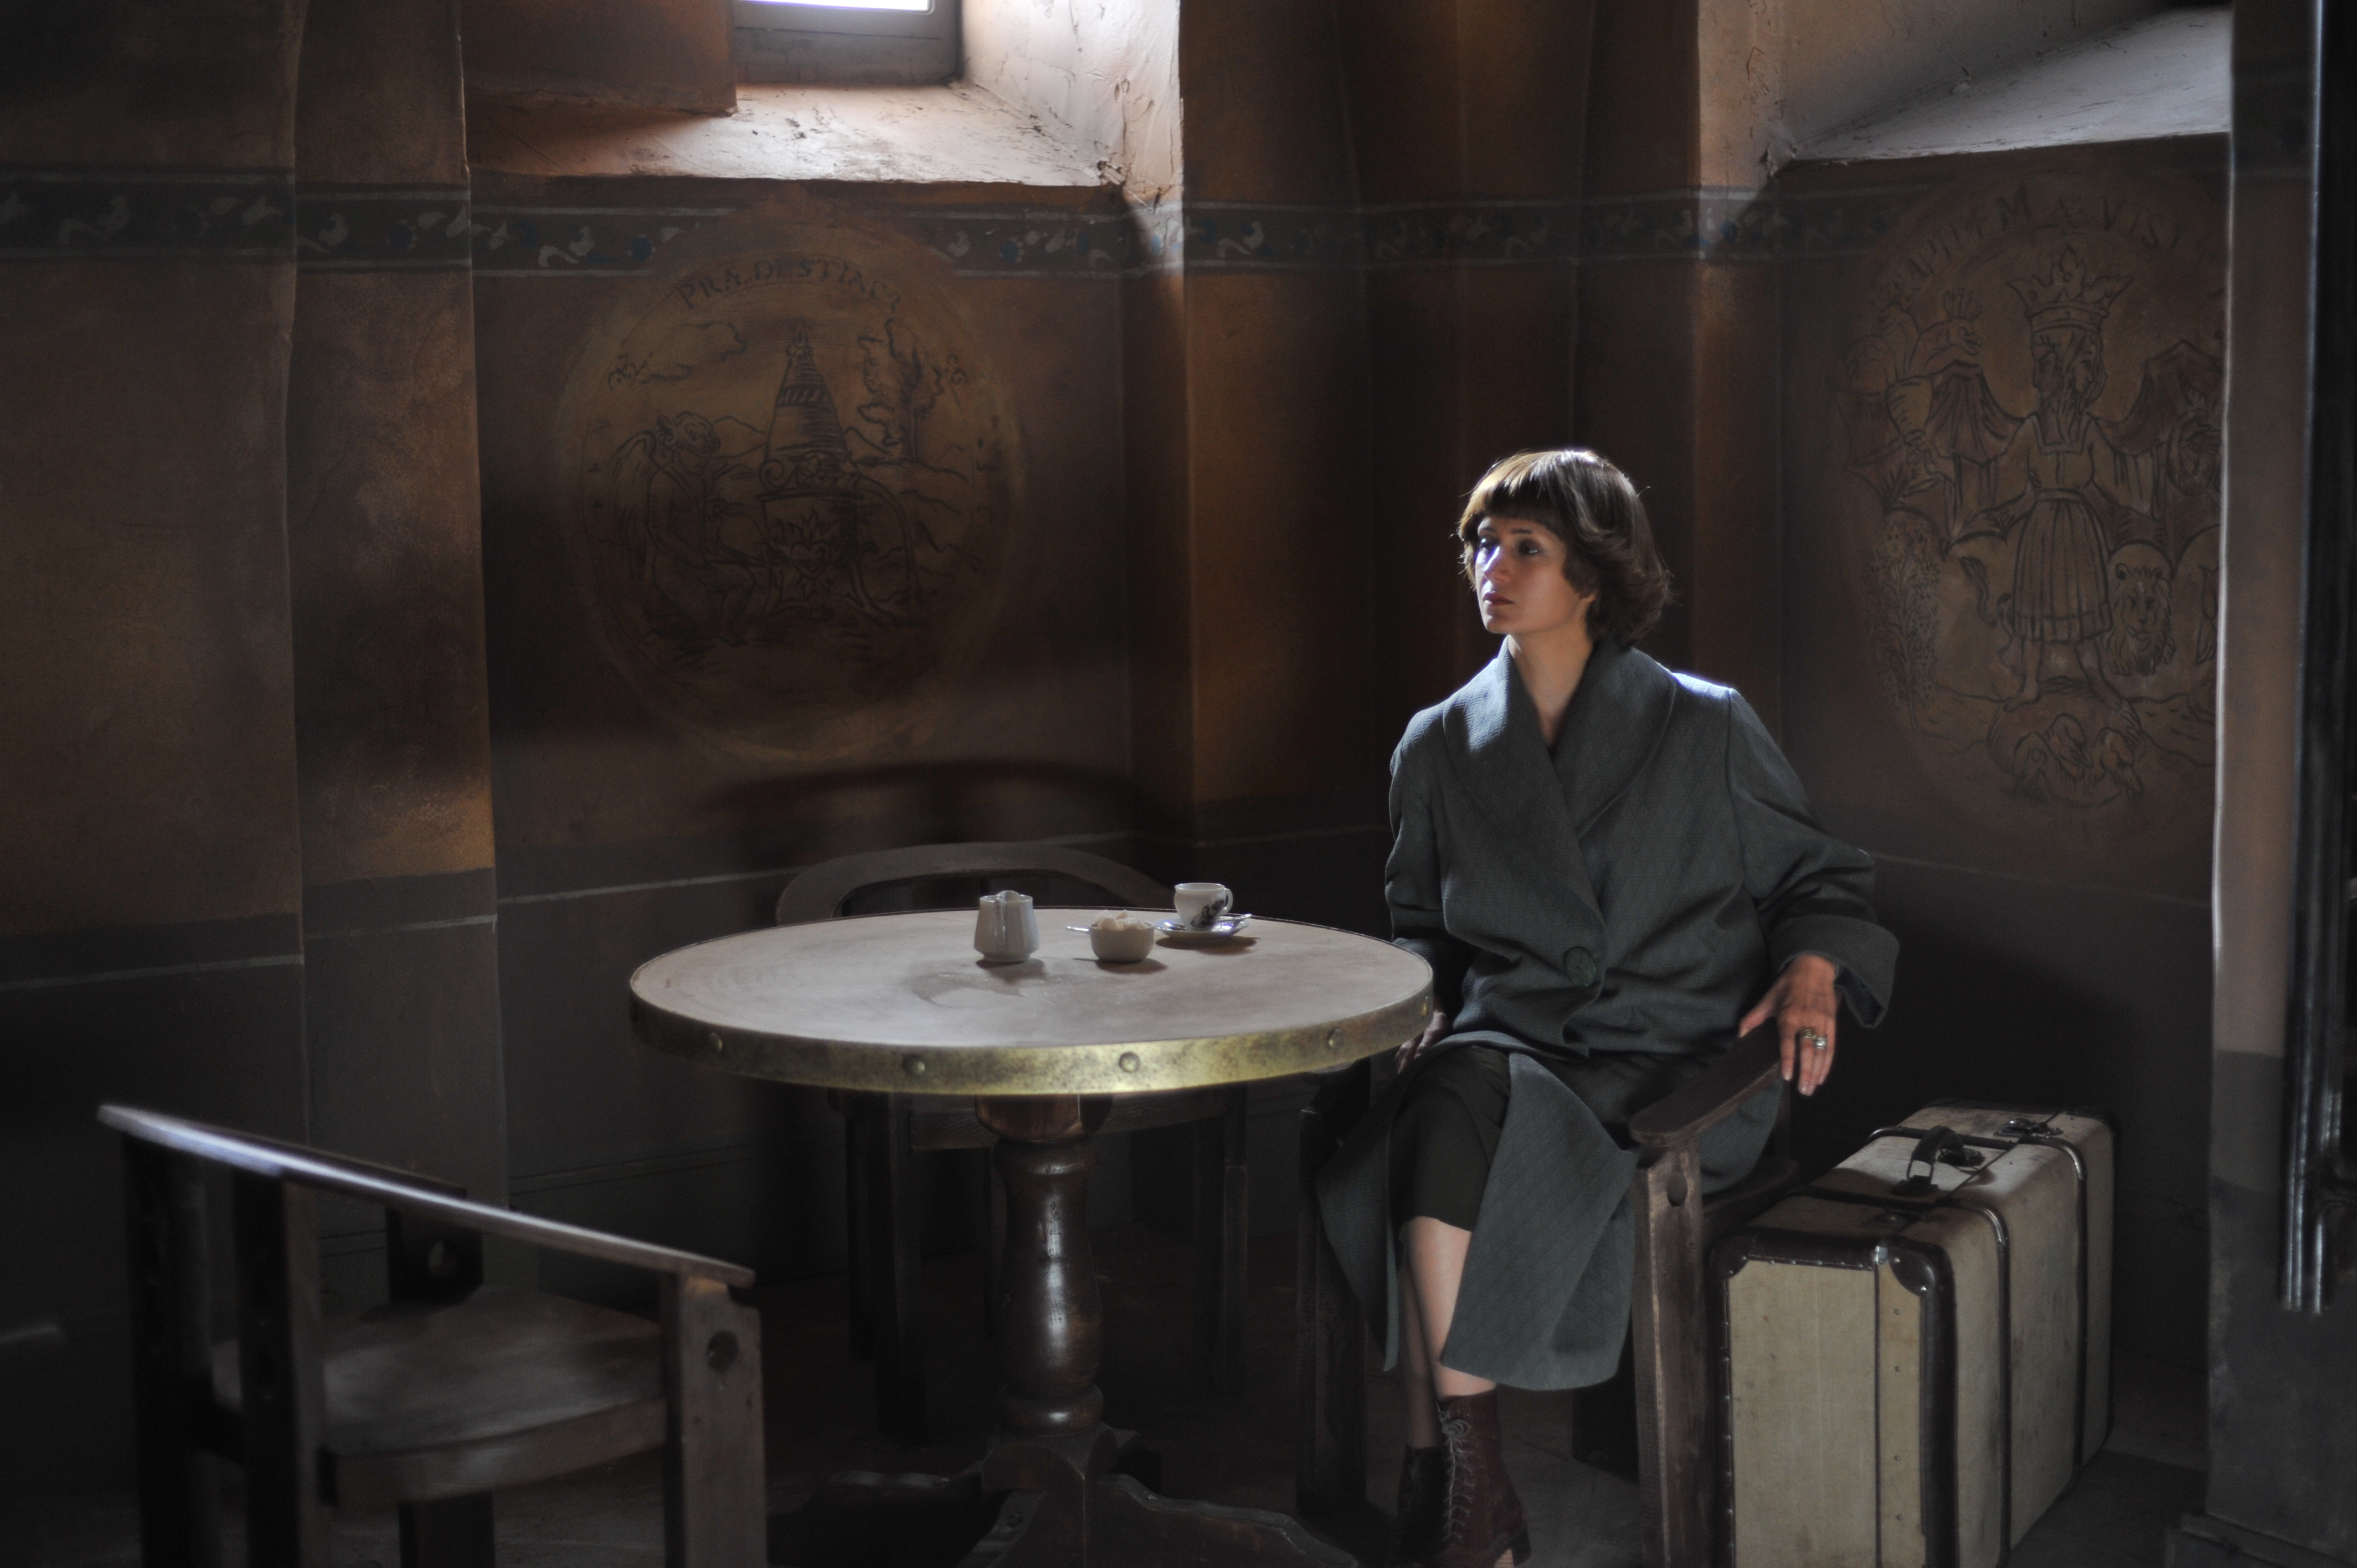 'Mirrors' by Marina Migunova is the first historical-biographical feature film that focuses on the tragic fate of the poet Marina Tsvetaeva.